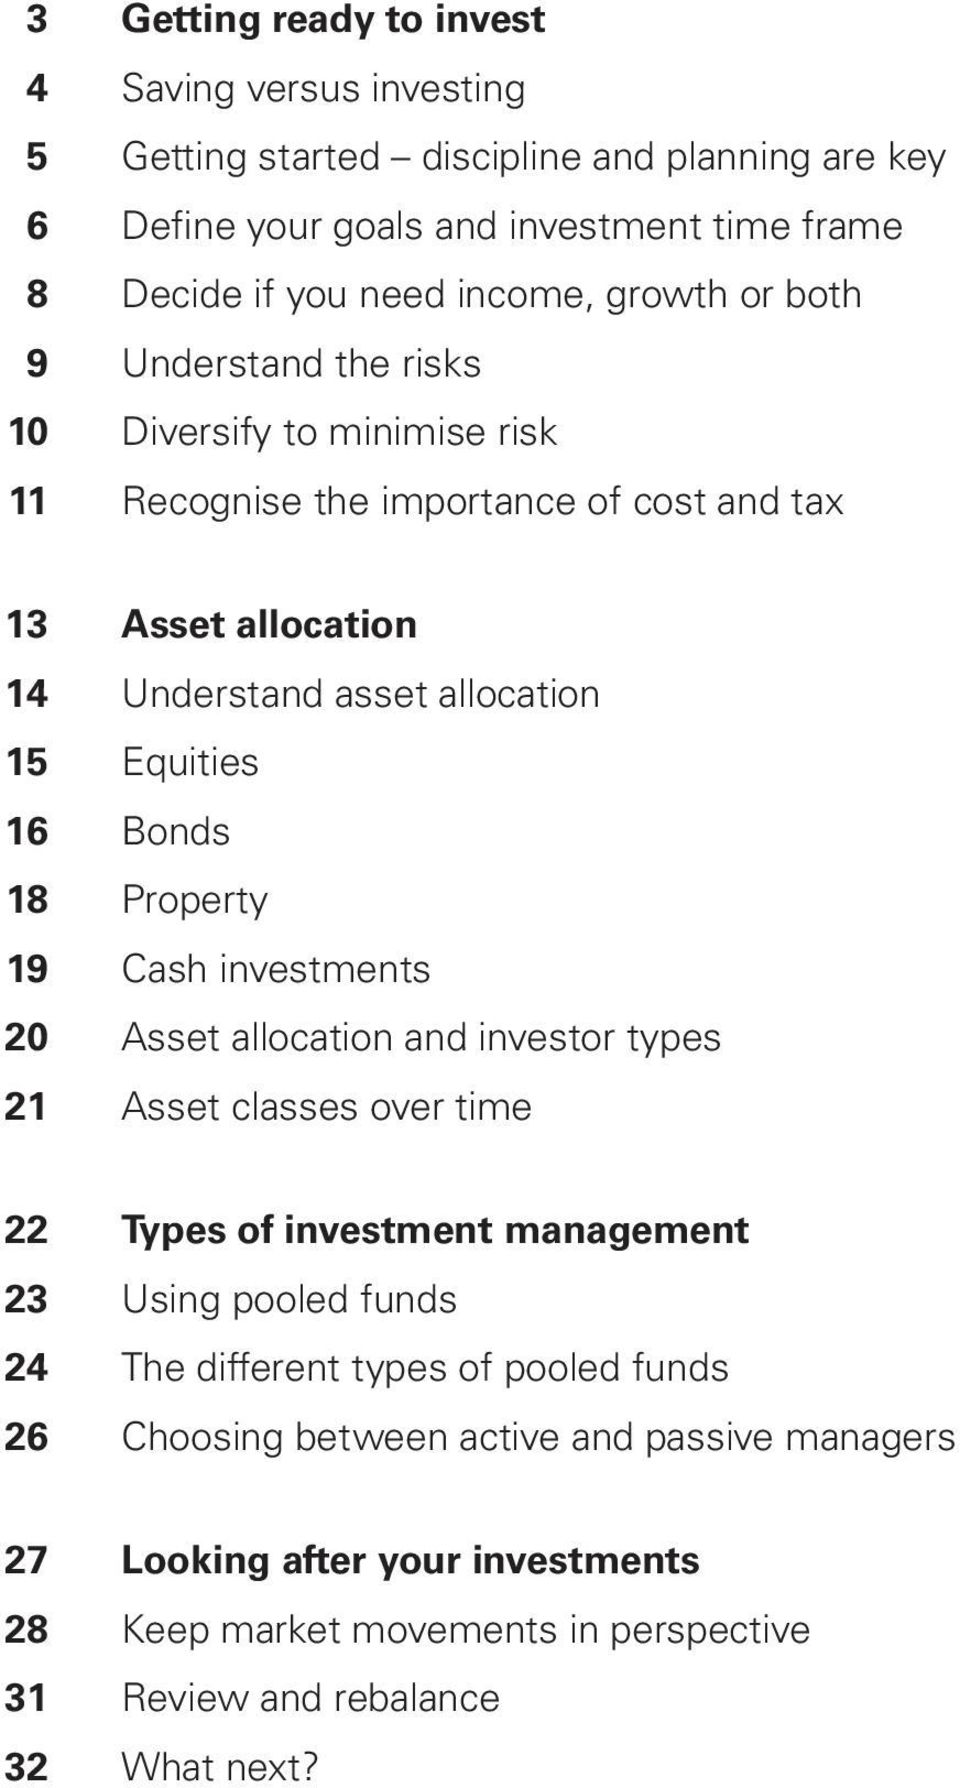 Bonds 18 Property 19 Cash investments 20 Asset allocation and investor types 21 Asset classes over time 22 Types of investment management 23 Using pooled funds 24 The different